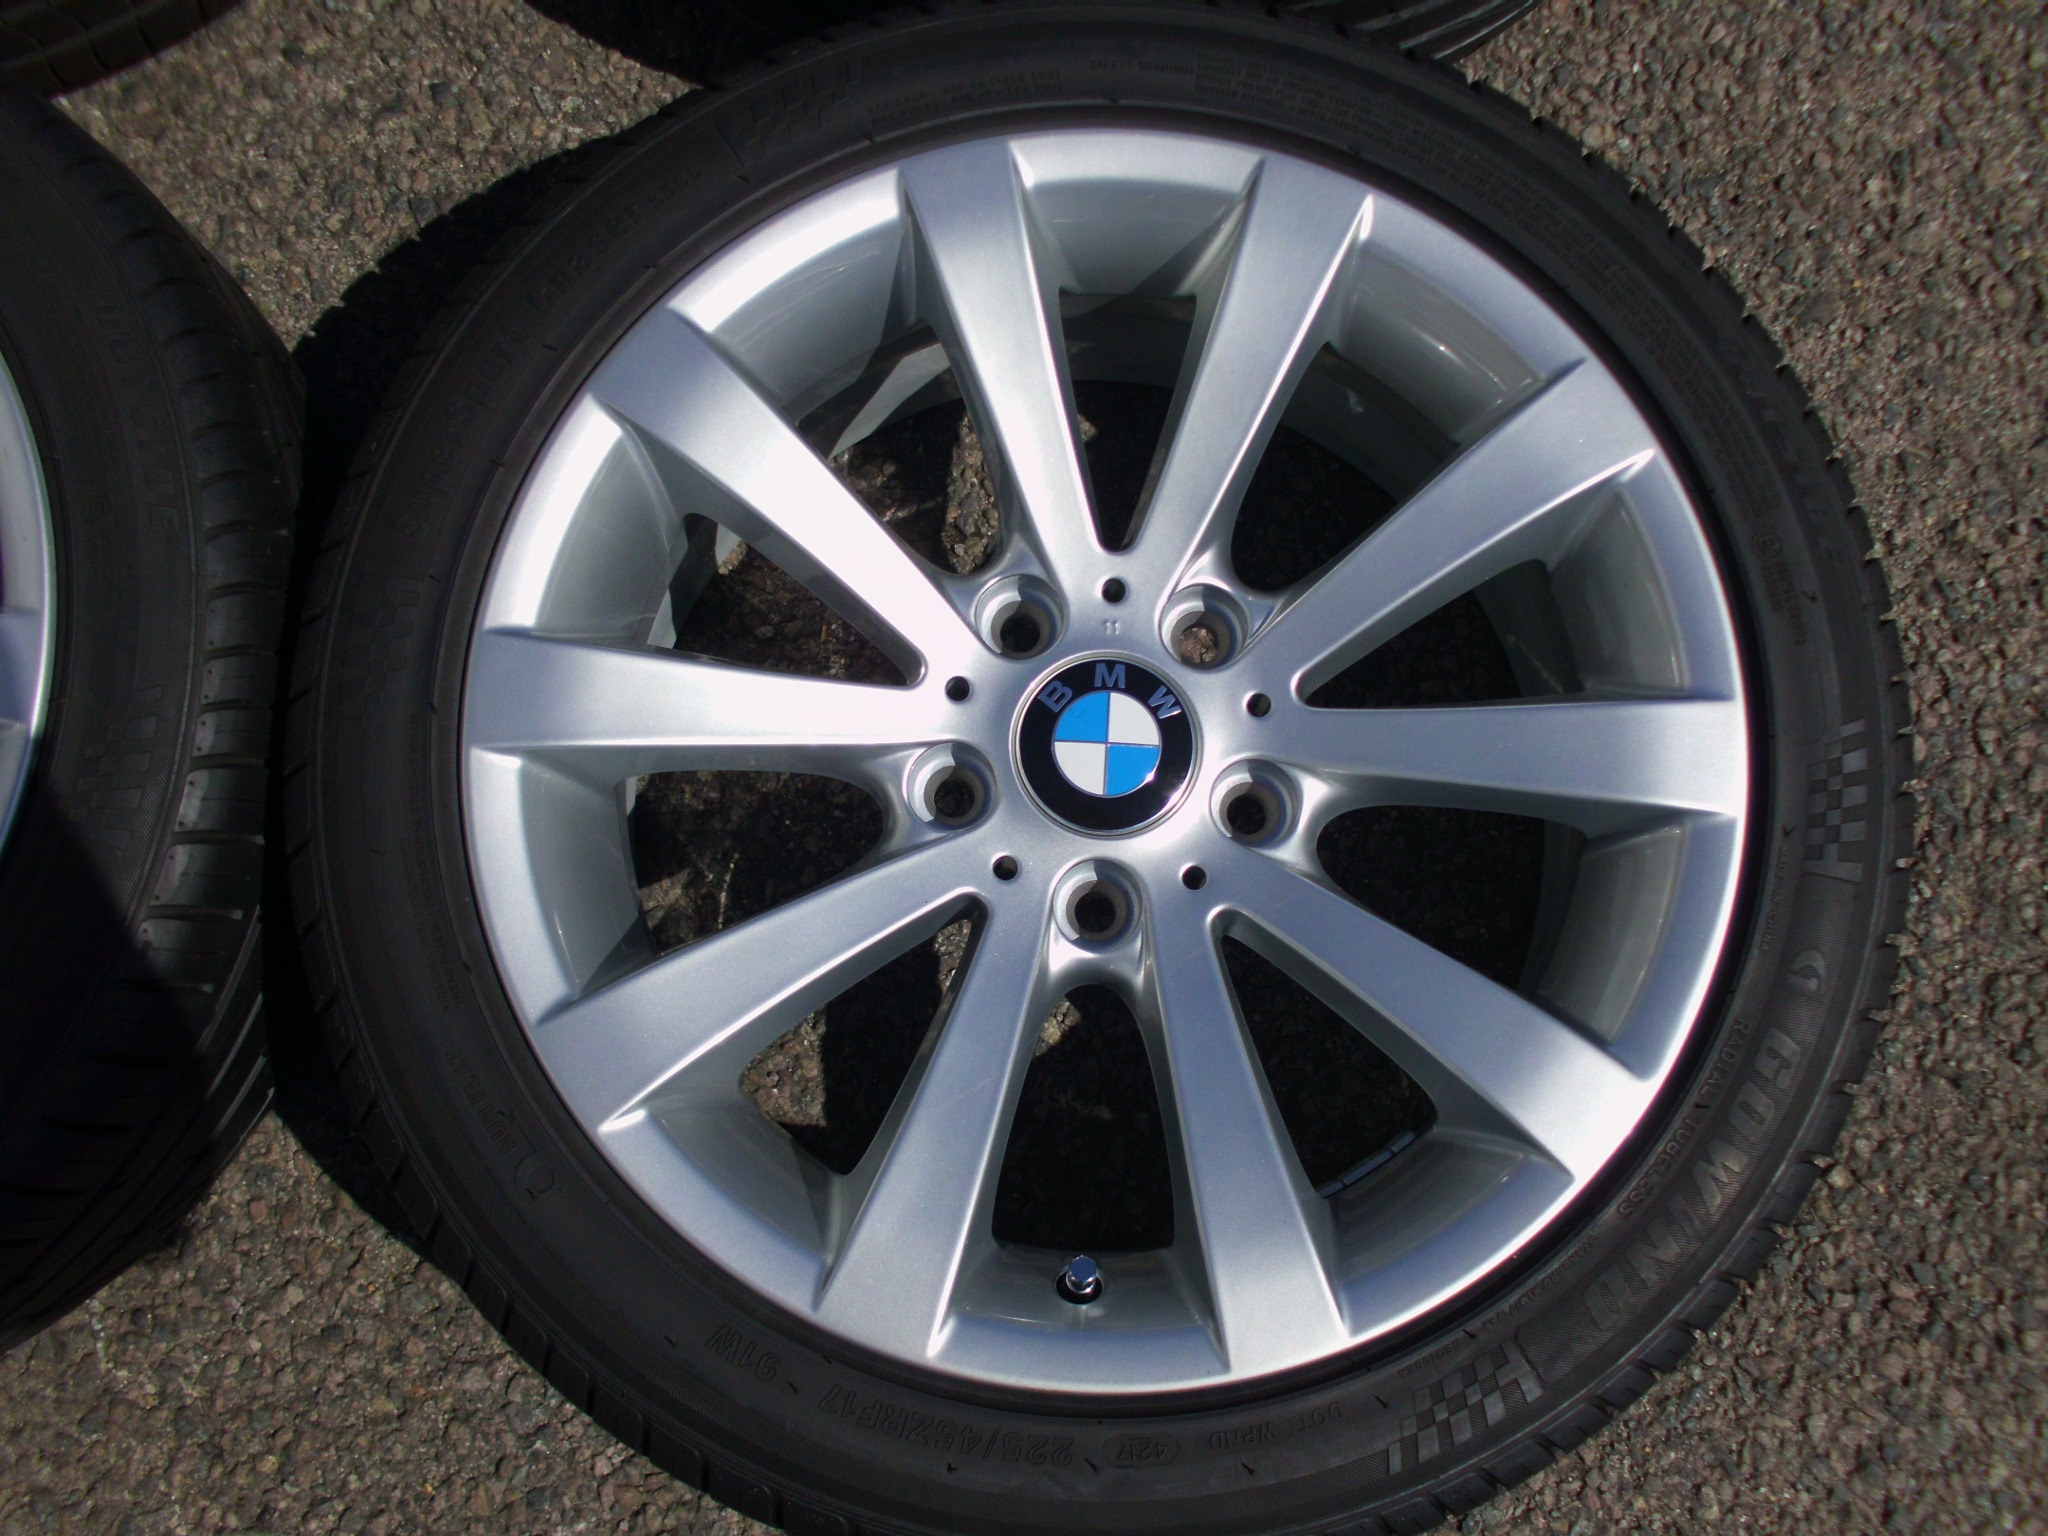 "USED 17"" GENUINE BMW STYLE 285 E90 V SPOKE ALLOYS, FULLY REFURBED INC RUNFLAT TYRES"